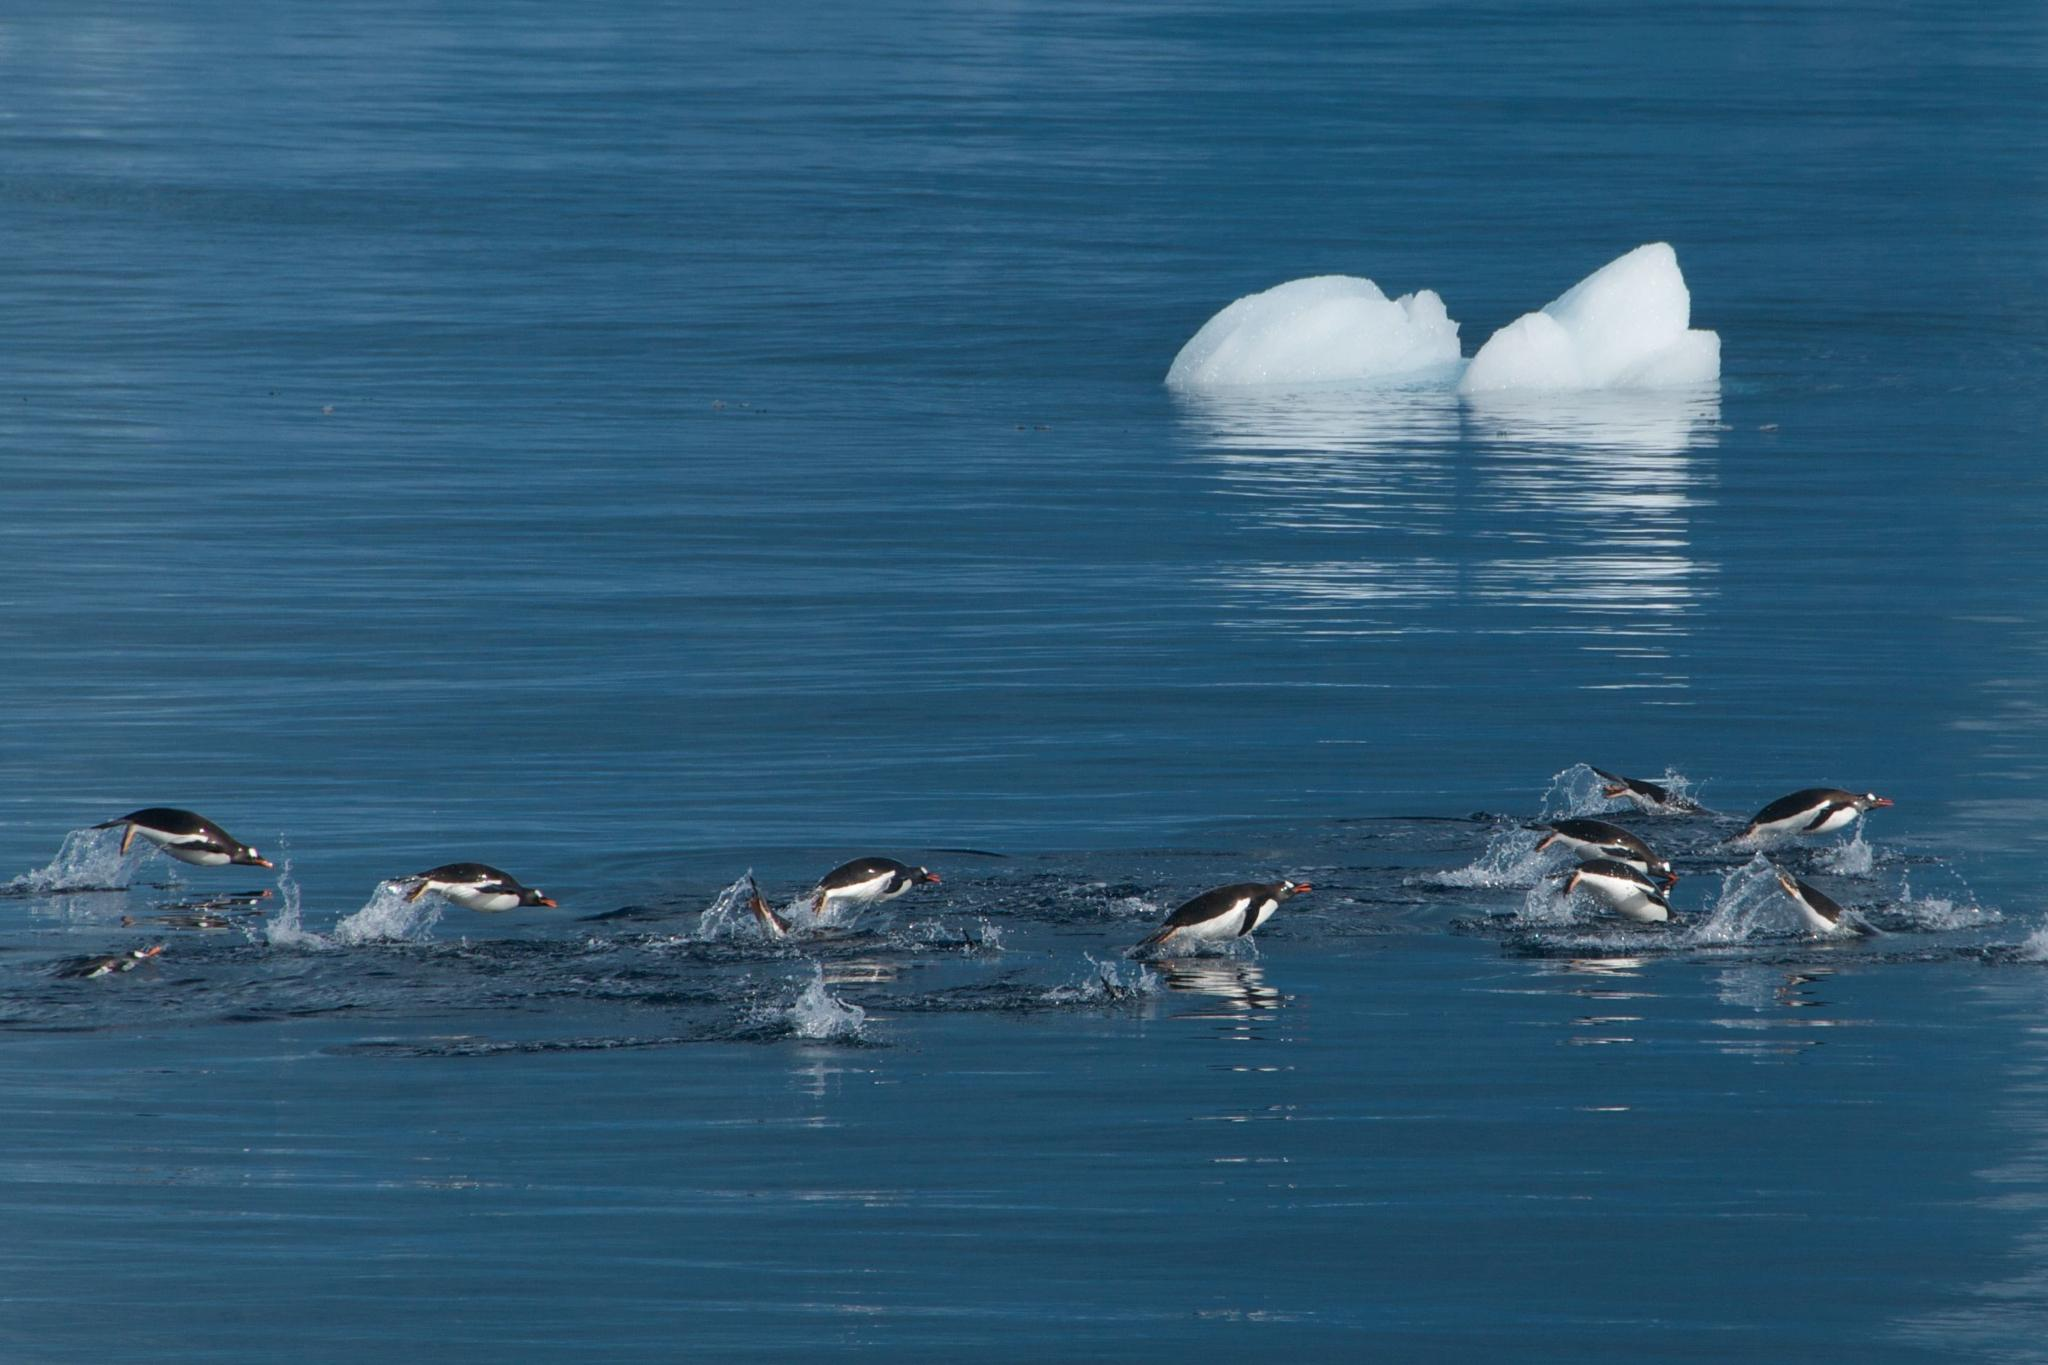 Jumping Penguin by eric.bettens